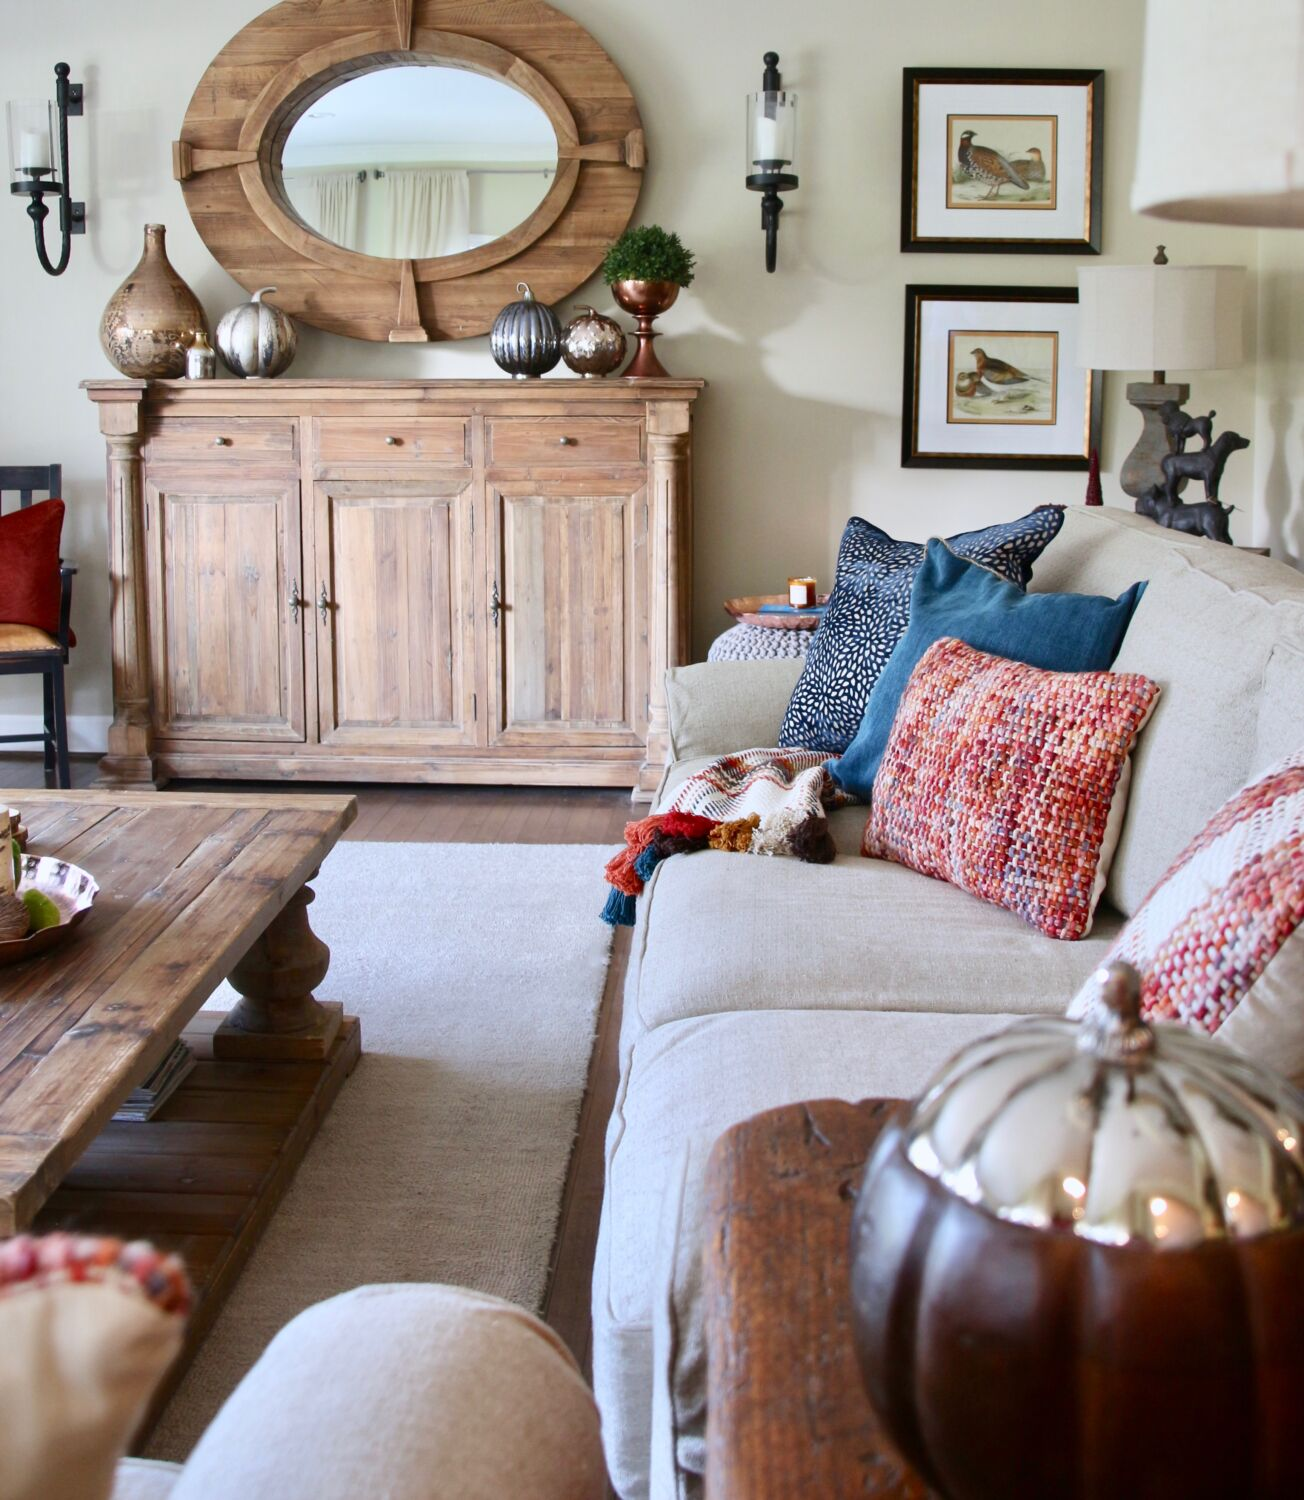 Fall_Blogger_home_tour_living_room_neutral_decor_autumn_colors_meme_hill_Amie_freling_HomeGoods_copper_tray_sideboard